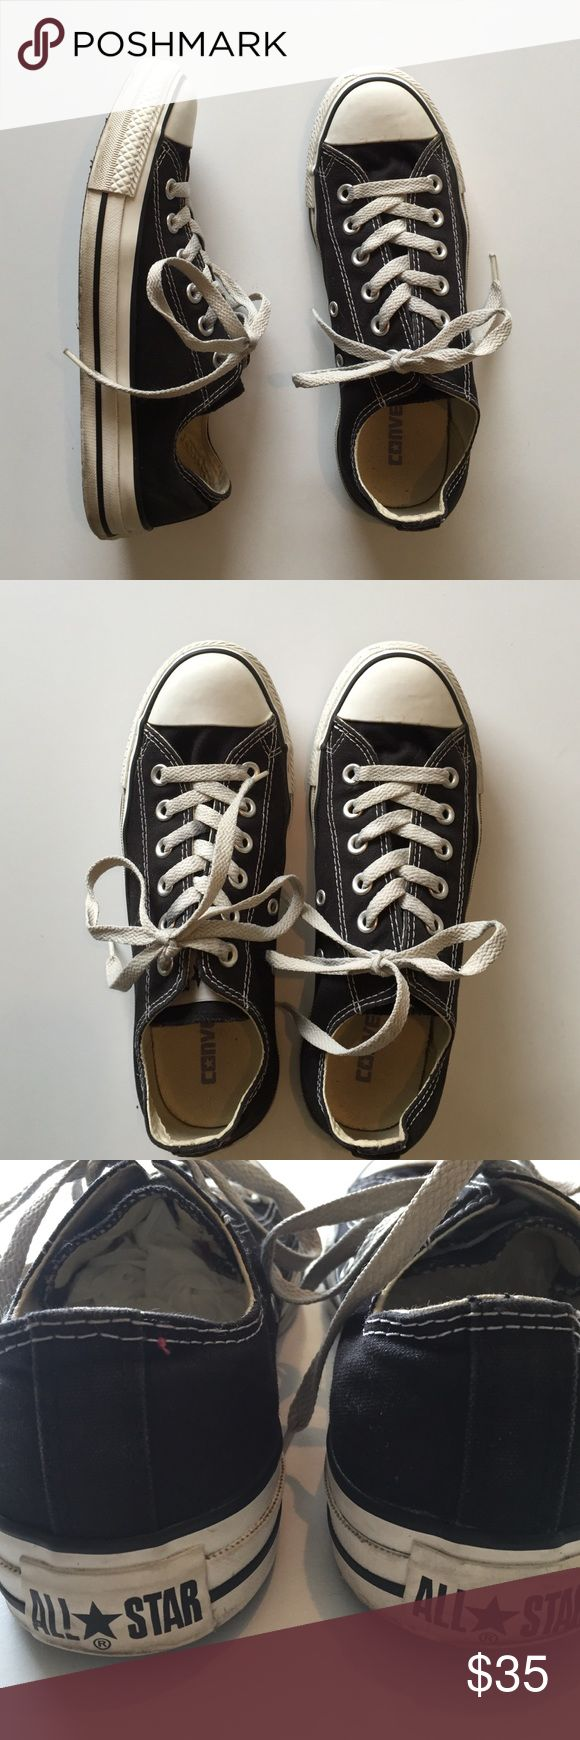 Low Top Black Converse Classic low top Converse Chuck Taylors. Goes with anything! Slightly worn, but in very good condition. Size men's 5.5, women's 7.5. 🚫 No trades 🚫 Converse Shoes Sneakers